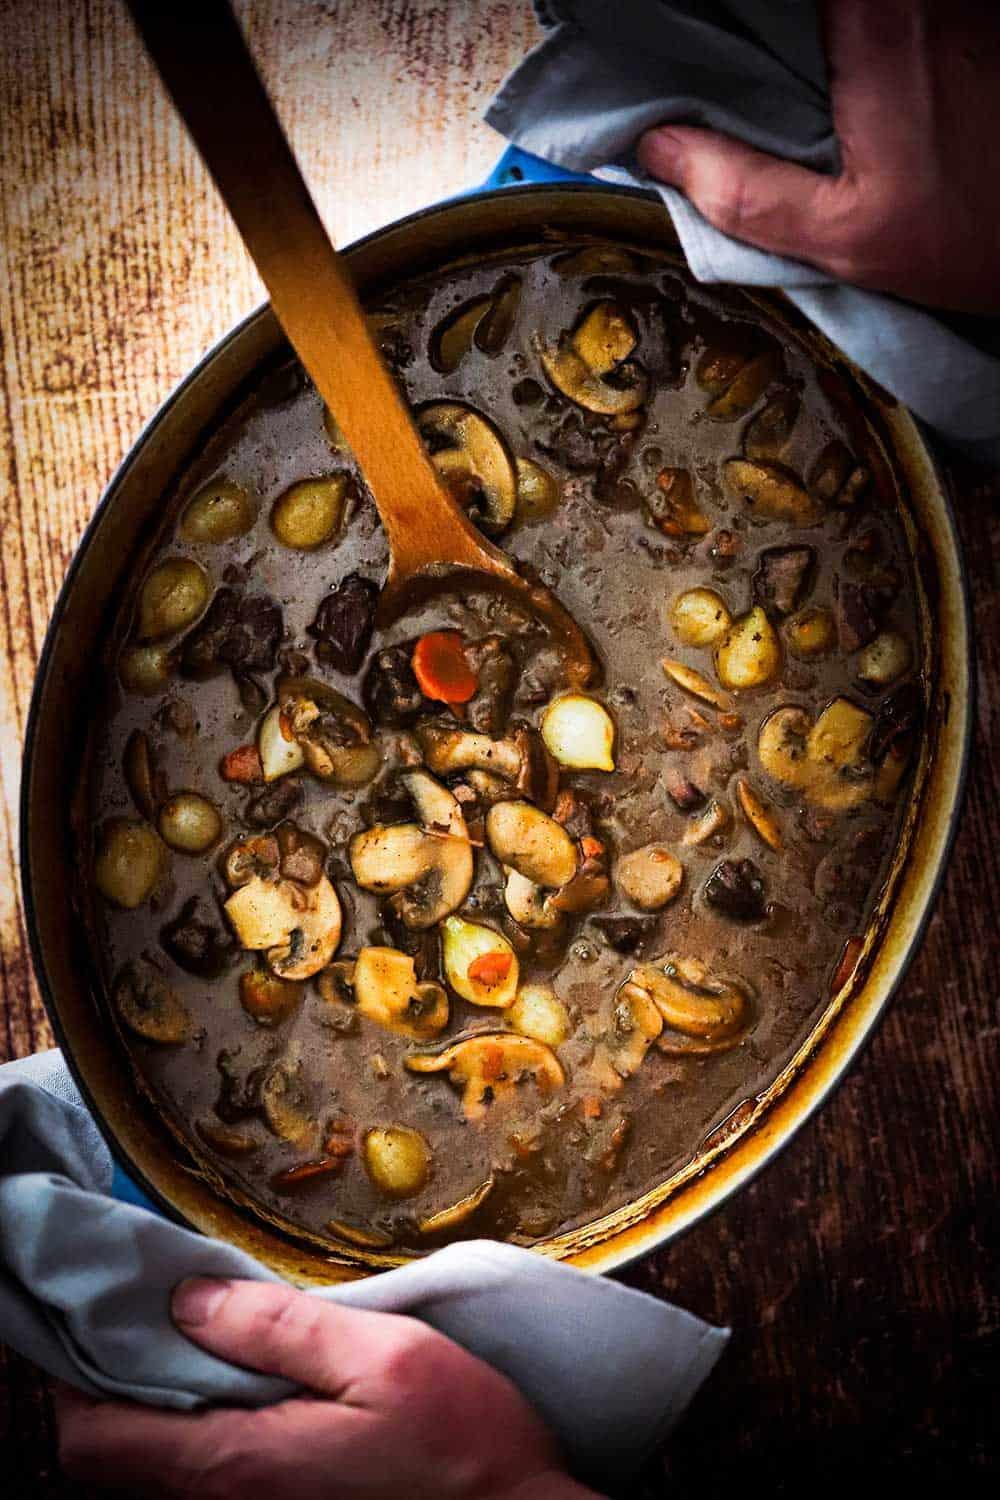 A large oval Dutch oven filled with beef bourguignon being held by two hands.